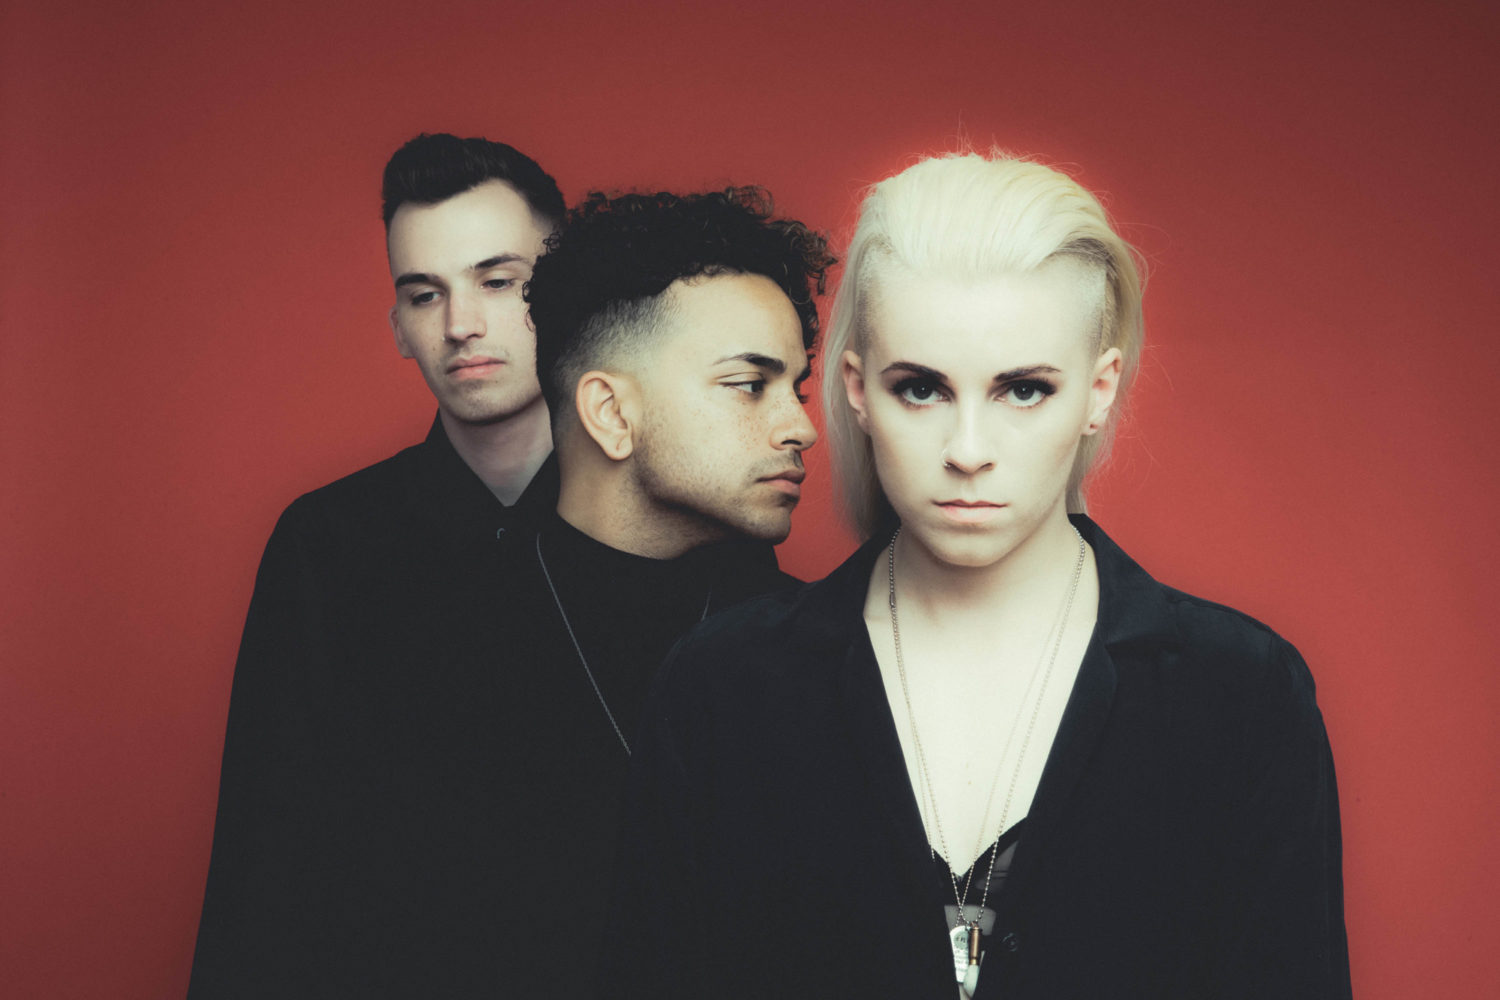 PVRIS share 'Winter' from new album, 'All We Know Of Heaven, All We Need Of Hell'